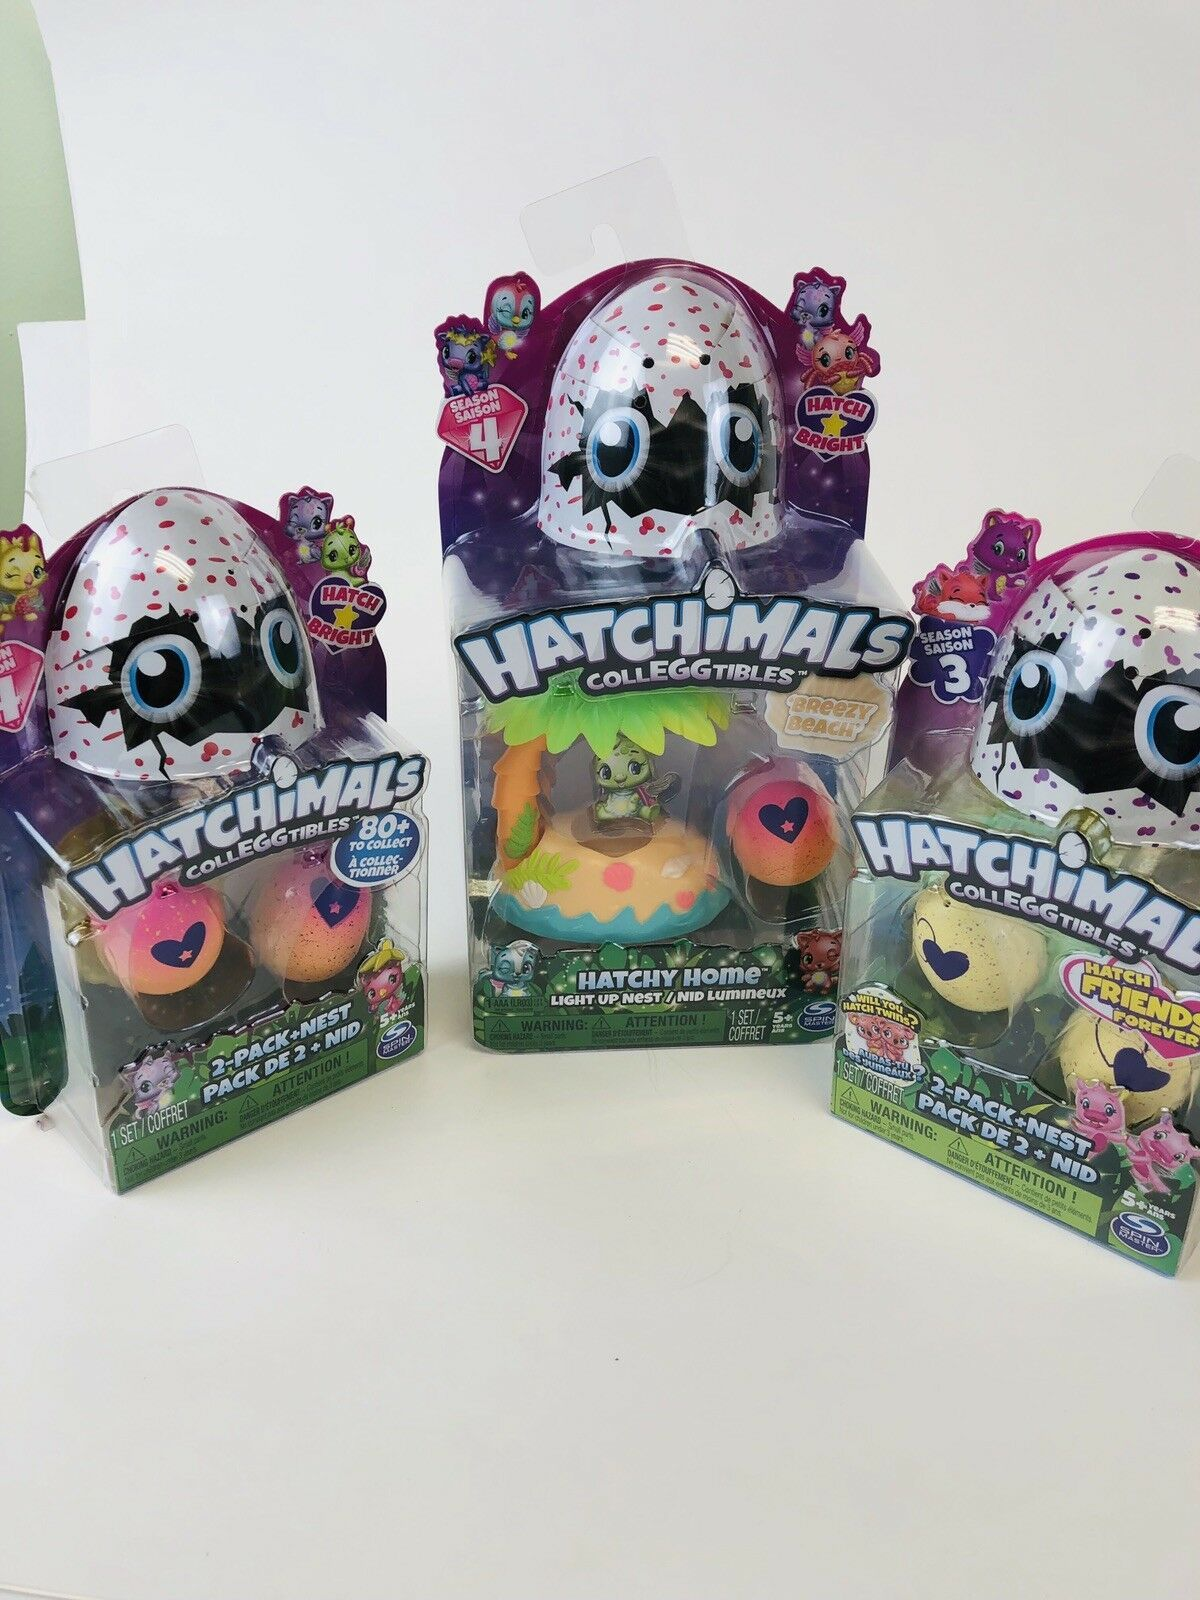 NEW HATCHIMALS COLLEGGTIBLES LOT -   2 - 2 Packs With Nest - 1 Hatchy Home